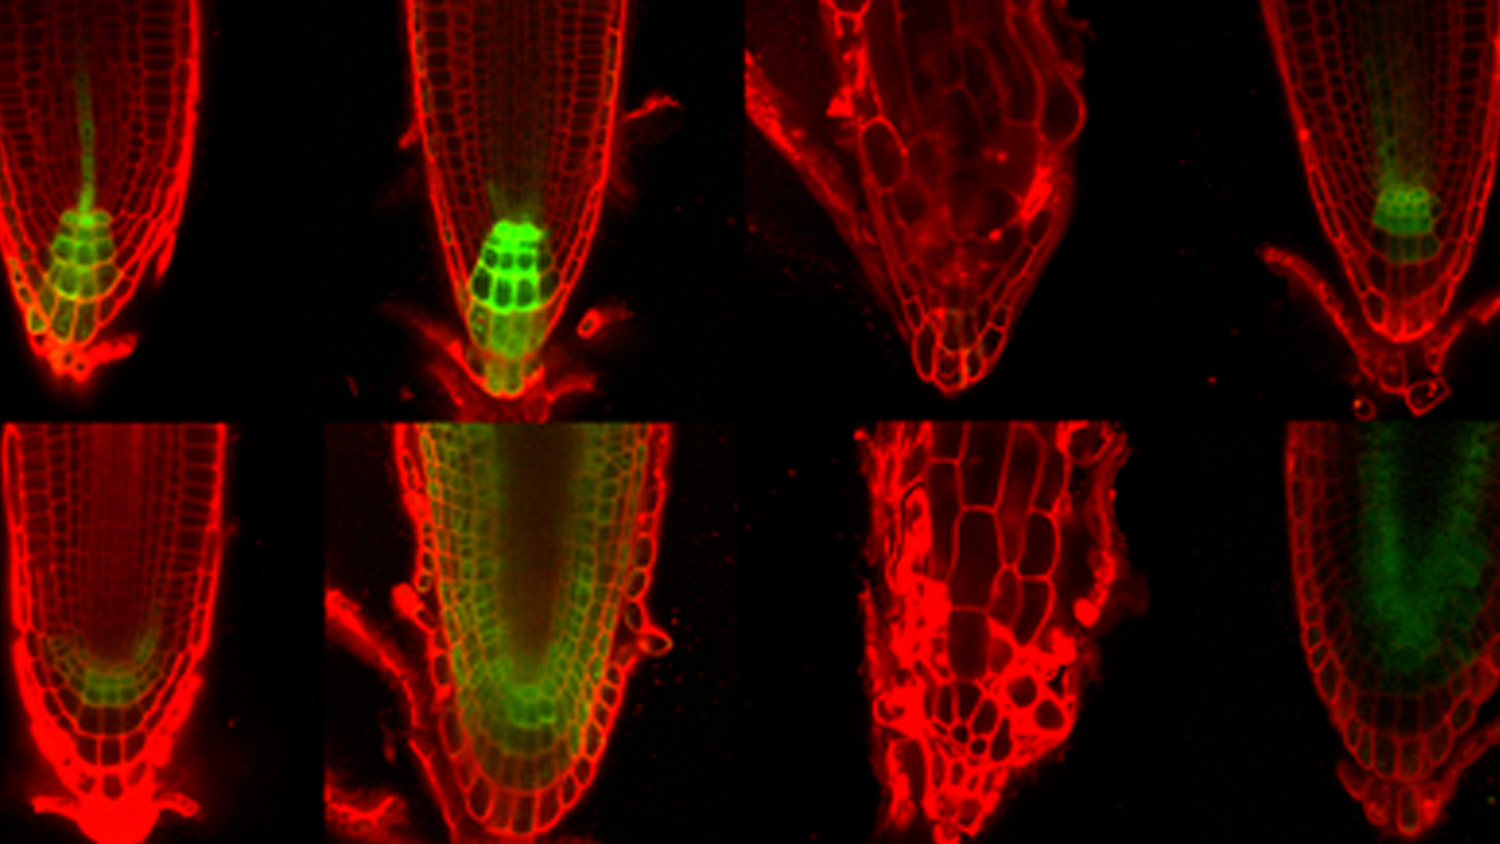 Microscopy images of plant roots.